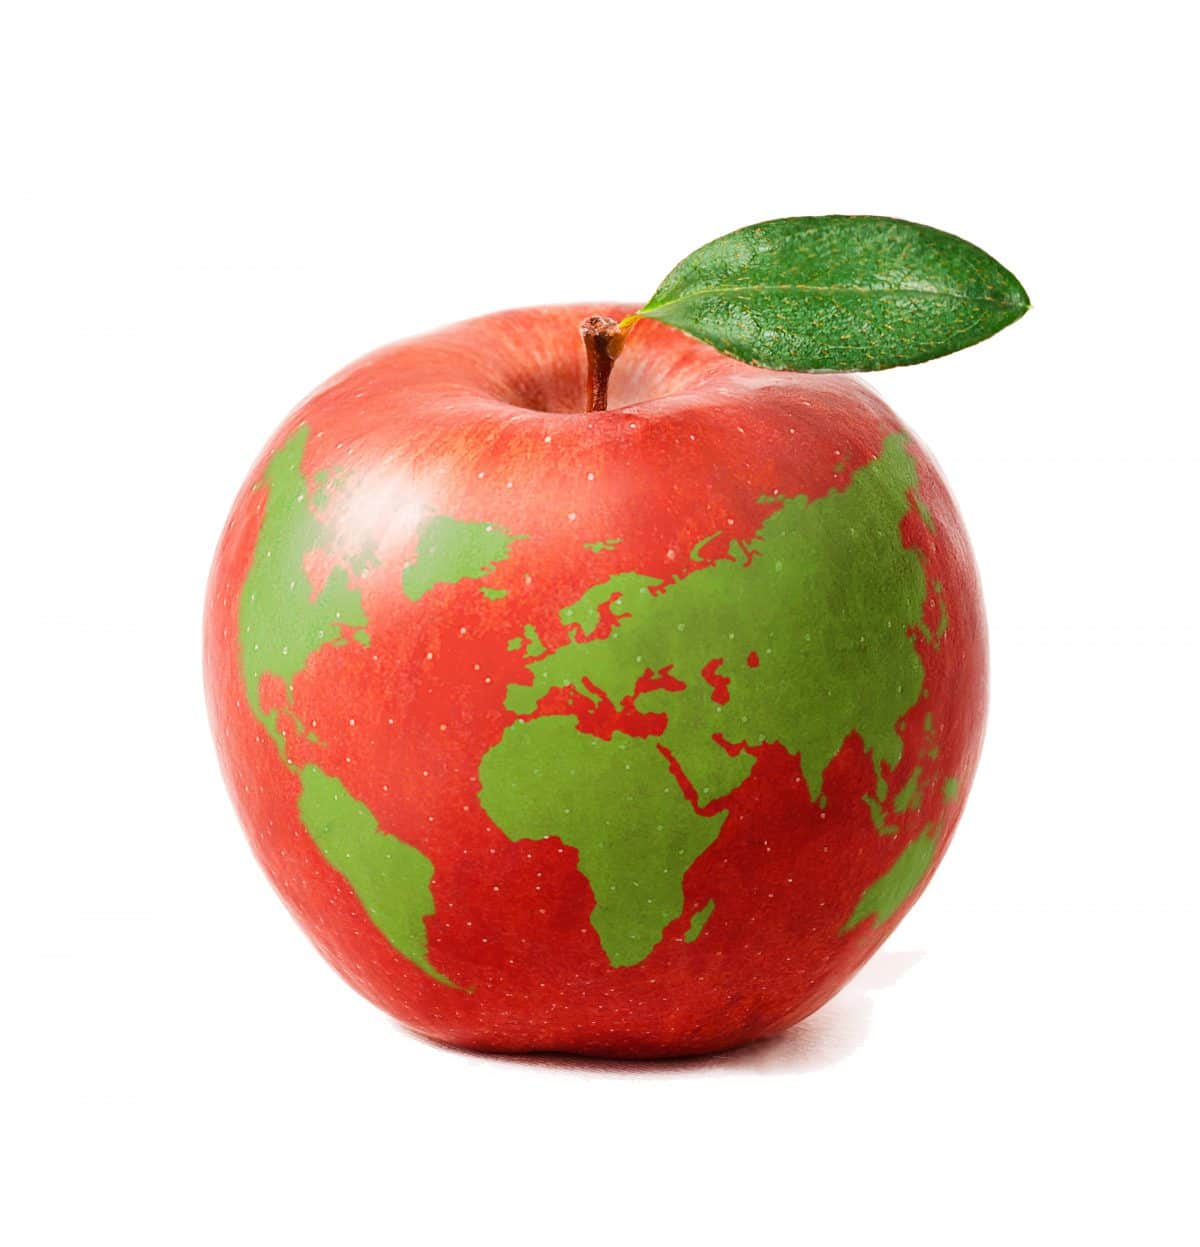 Global Food Waste Issue